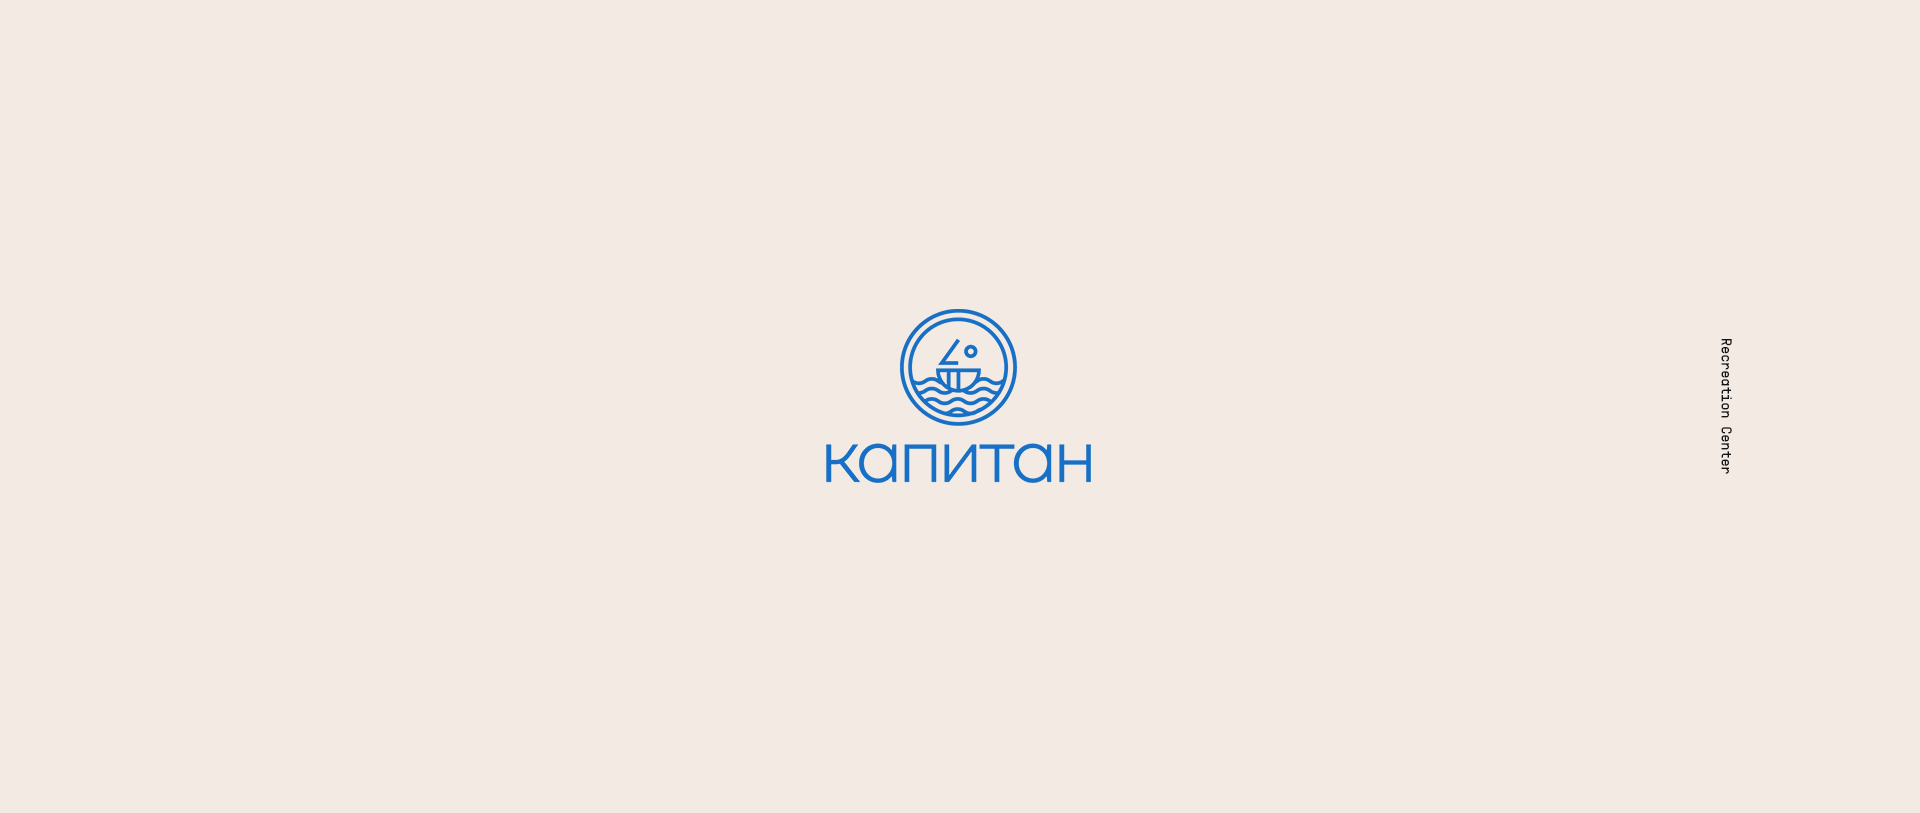 Logotyposhnaya: 50 Logotypes in 32 Hours